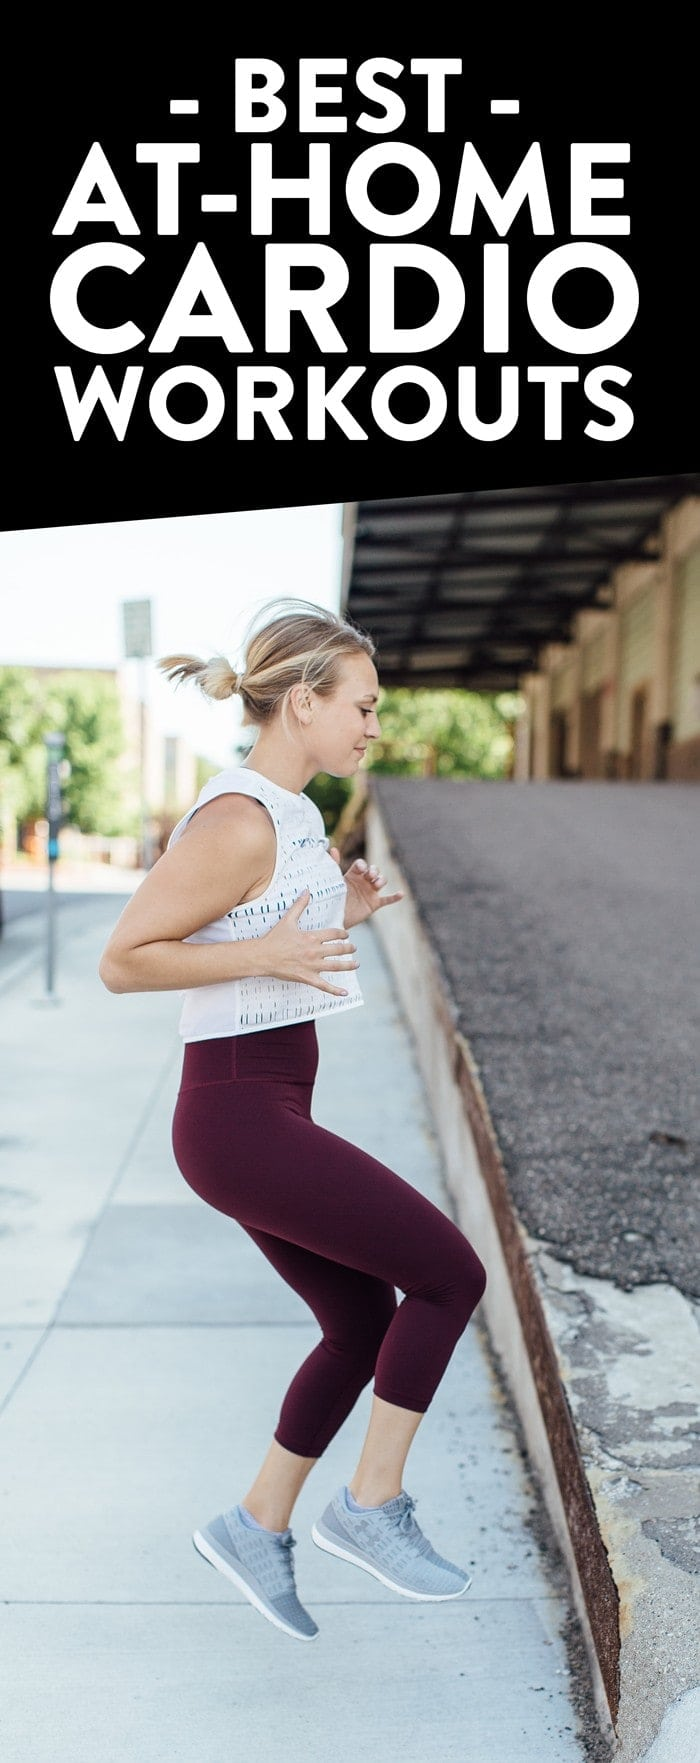 Boost your mood and your cardiovascular strength with these at-home cardio workouts. They are challenging, fun and they call for minimal equipment. Remember, you're always one workout away from a good mood. You got this!